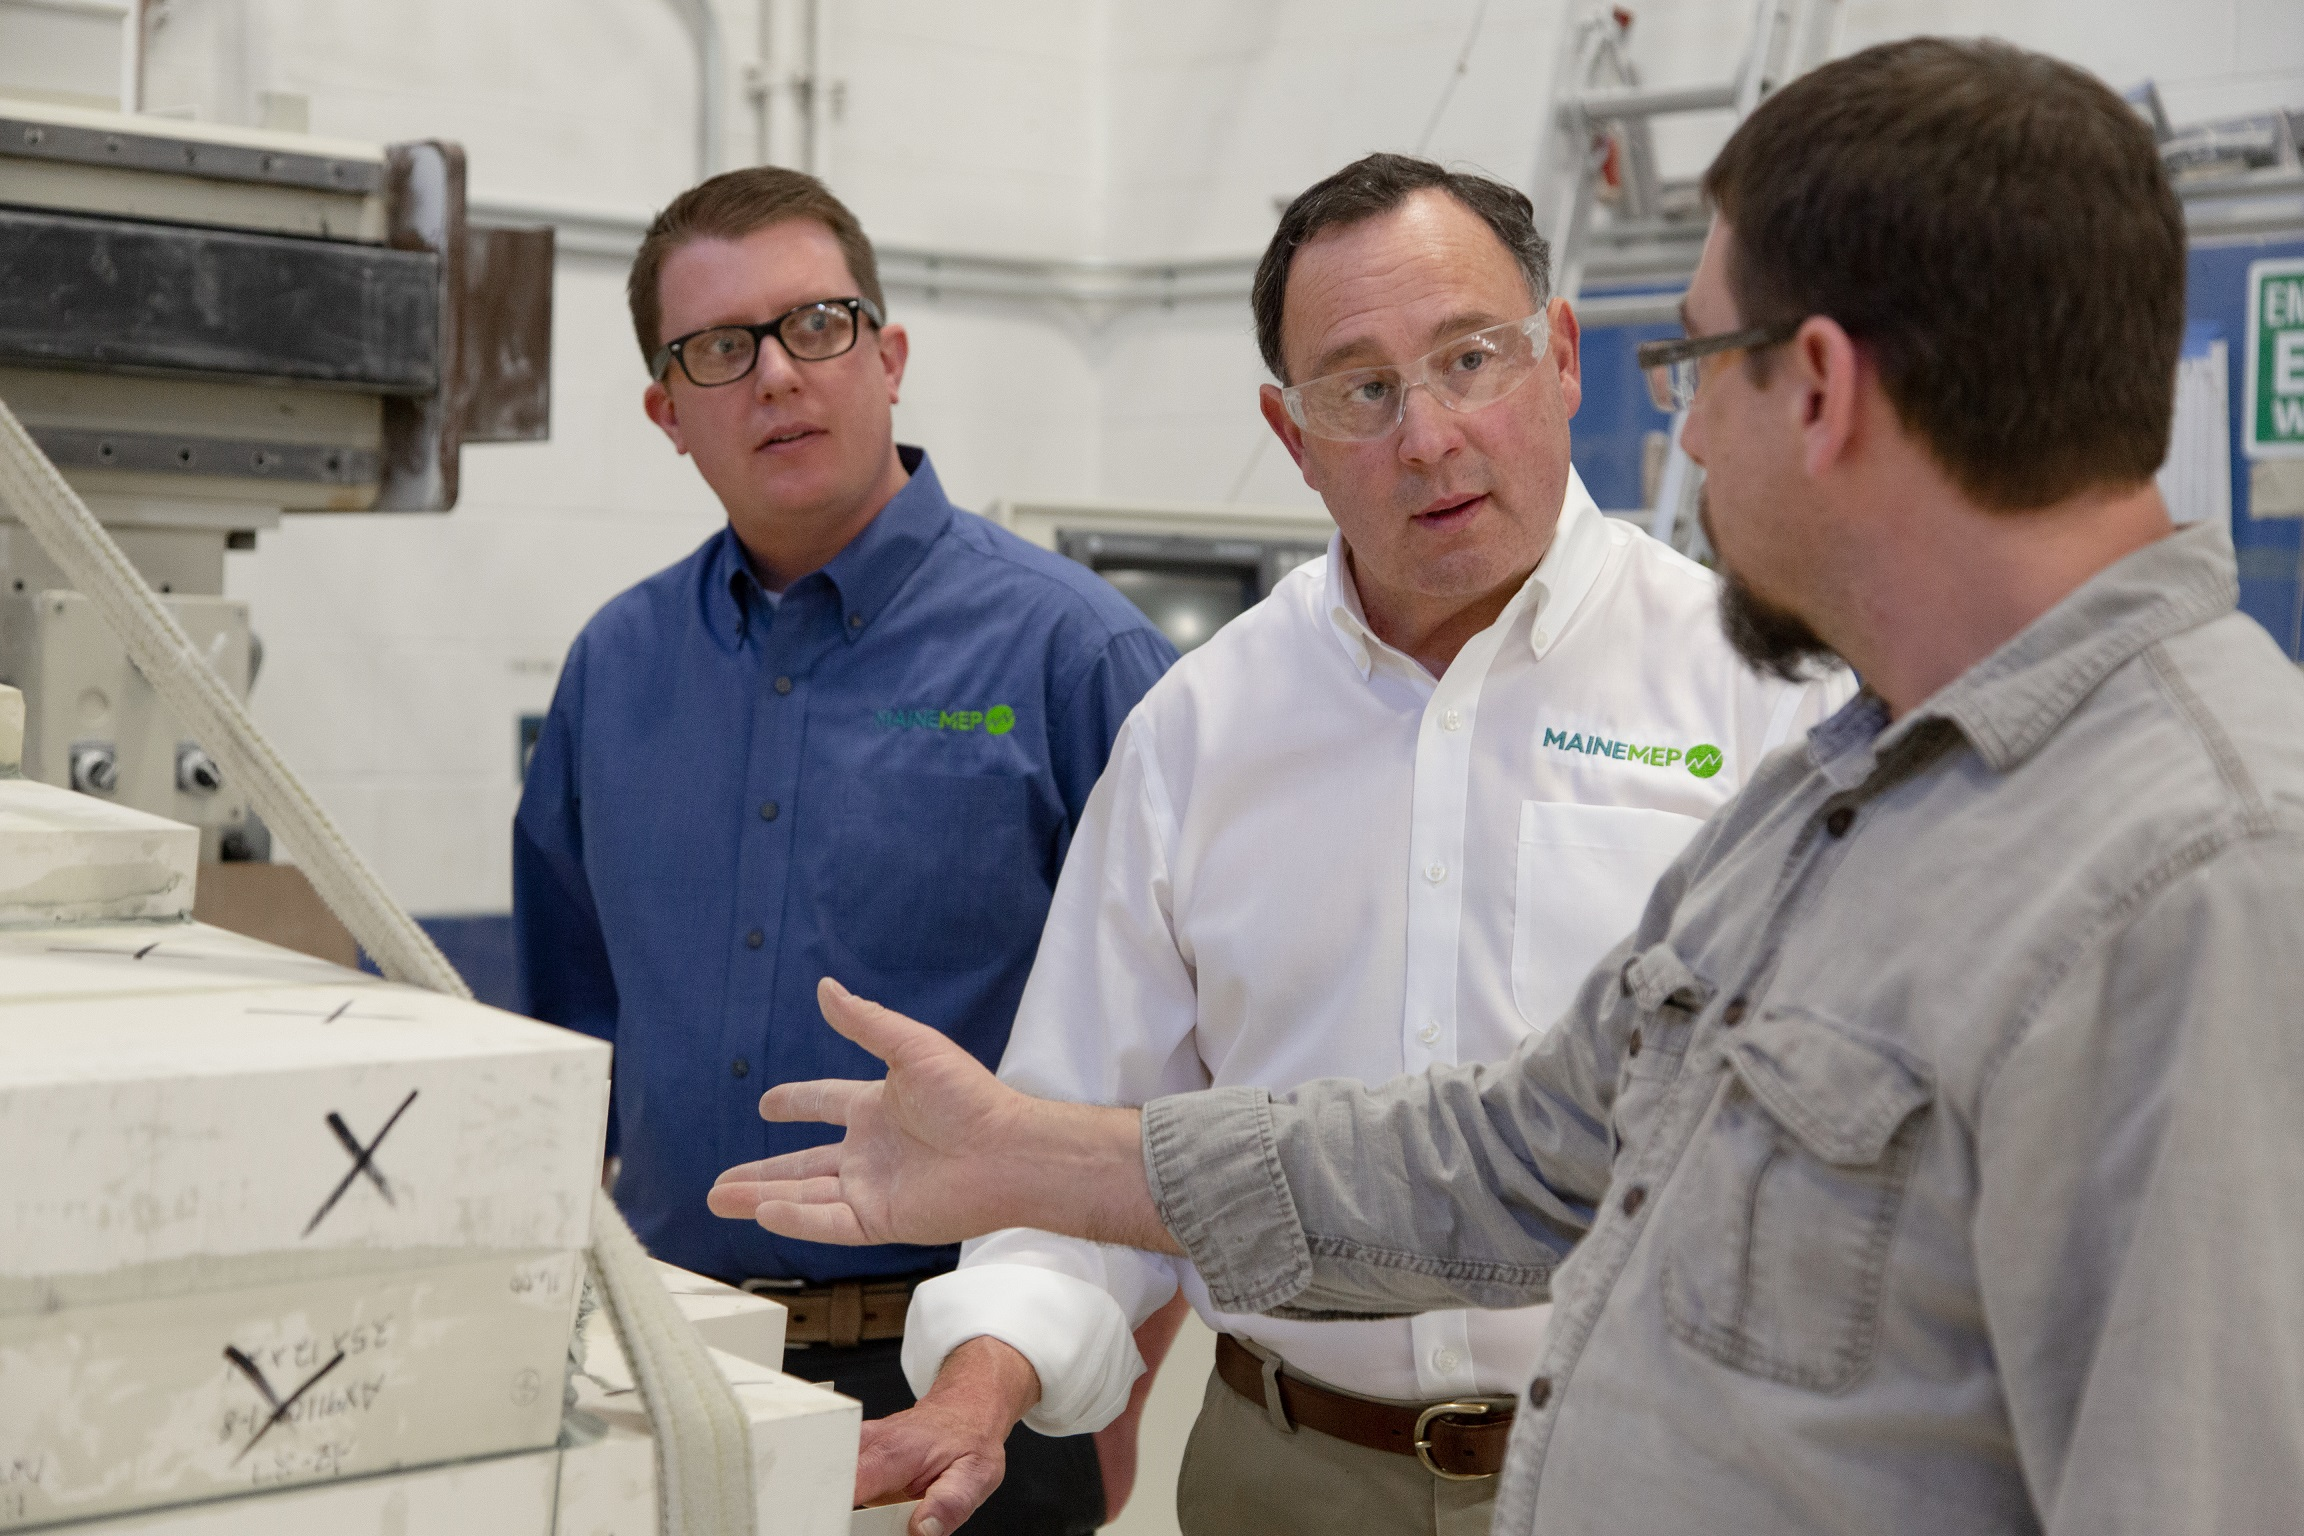 Project Managers speaking with client in manufacturing facility